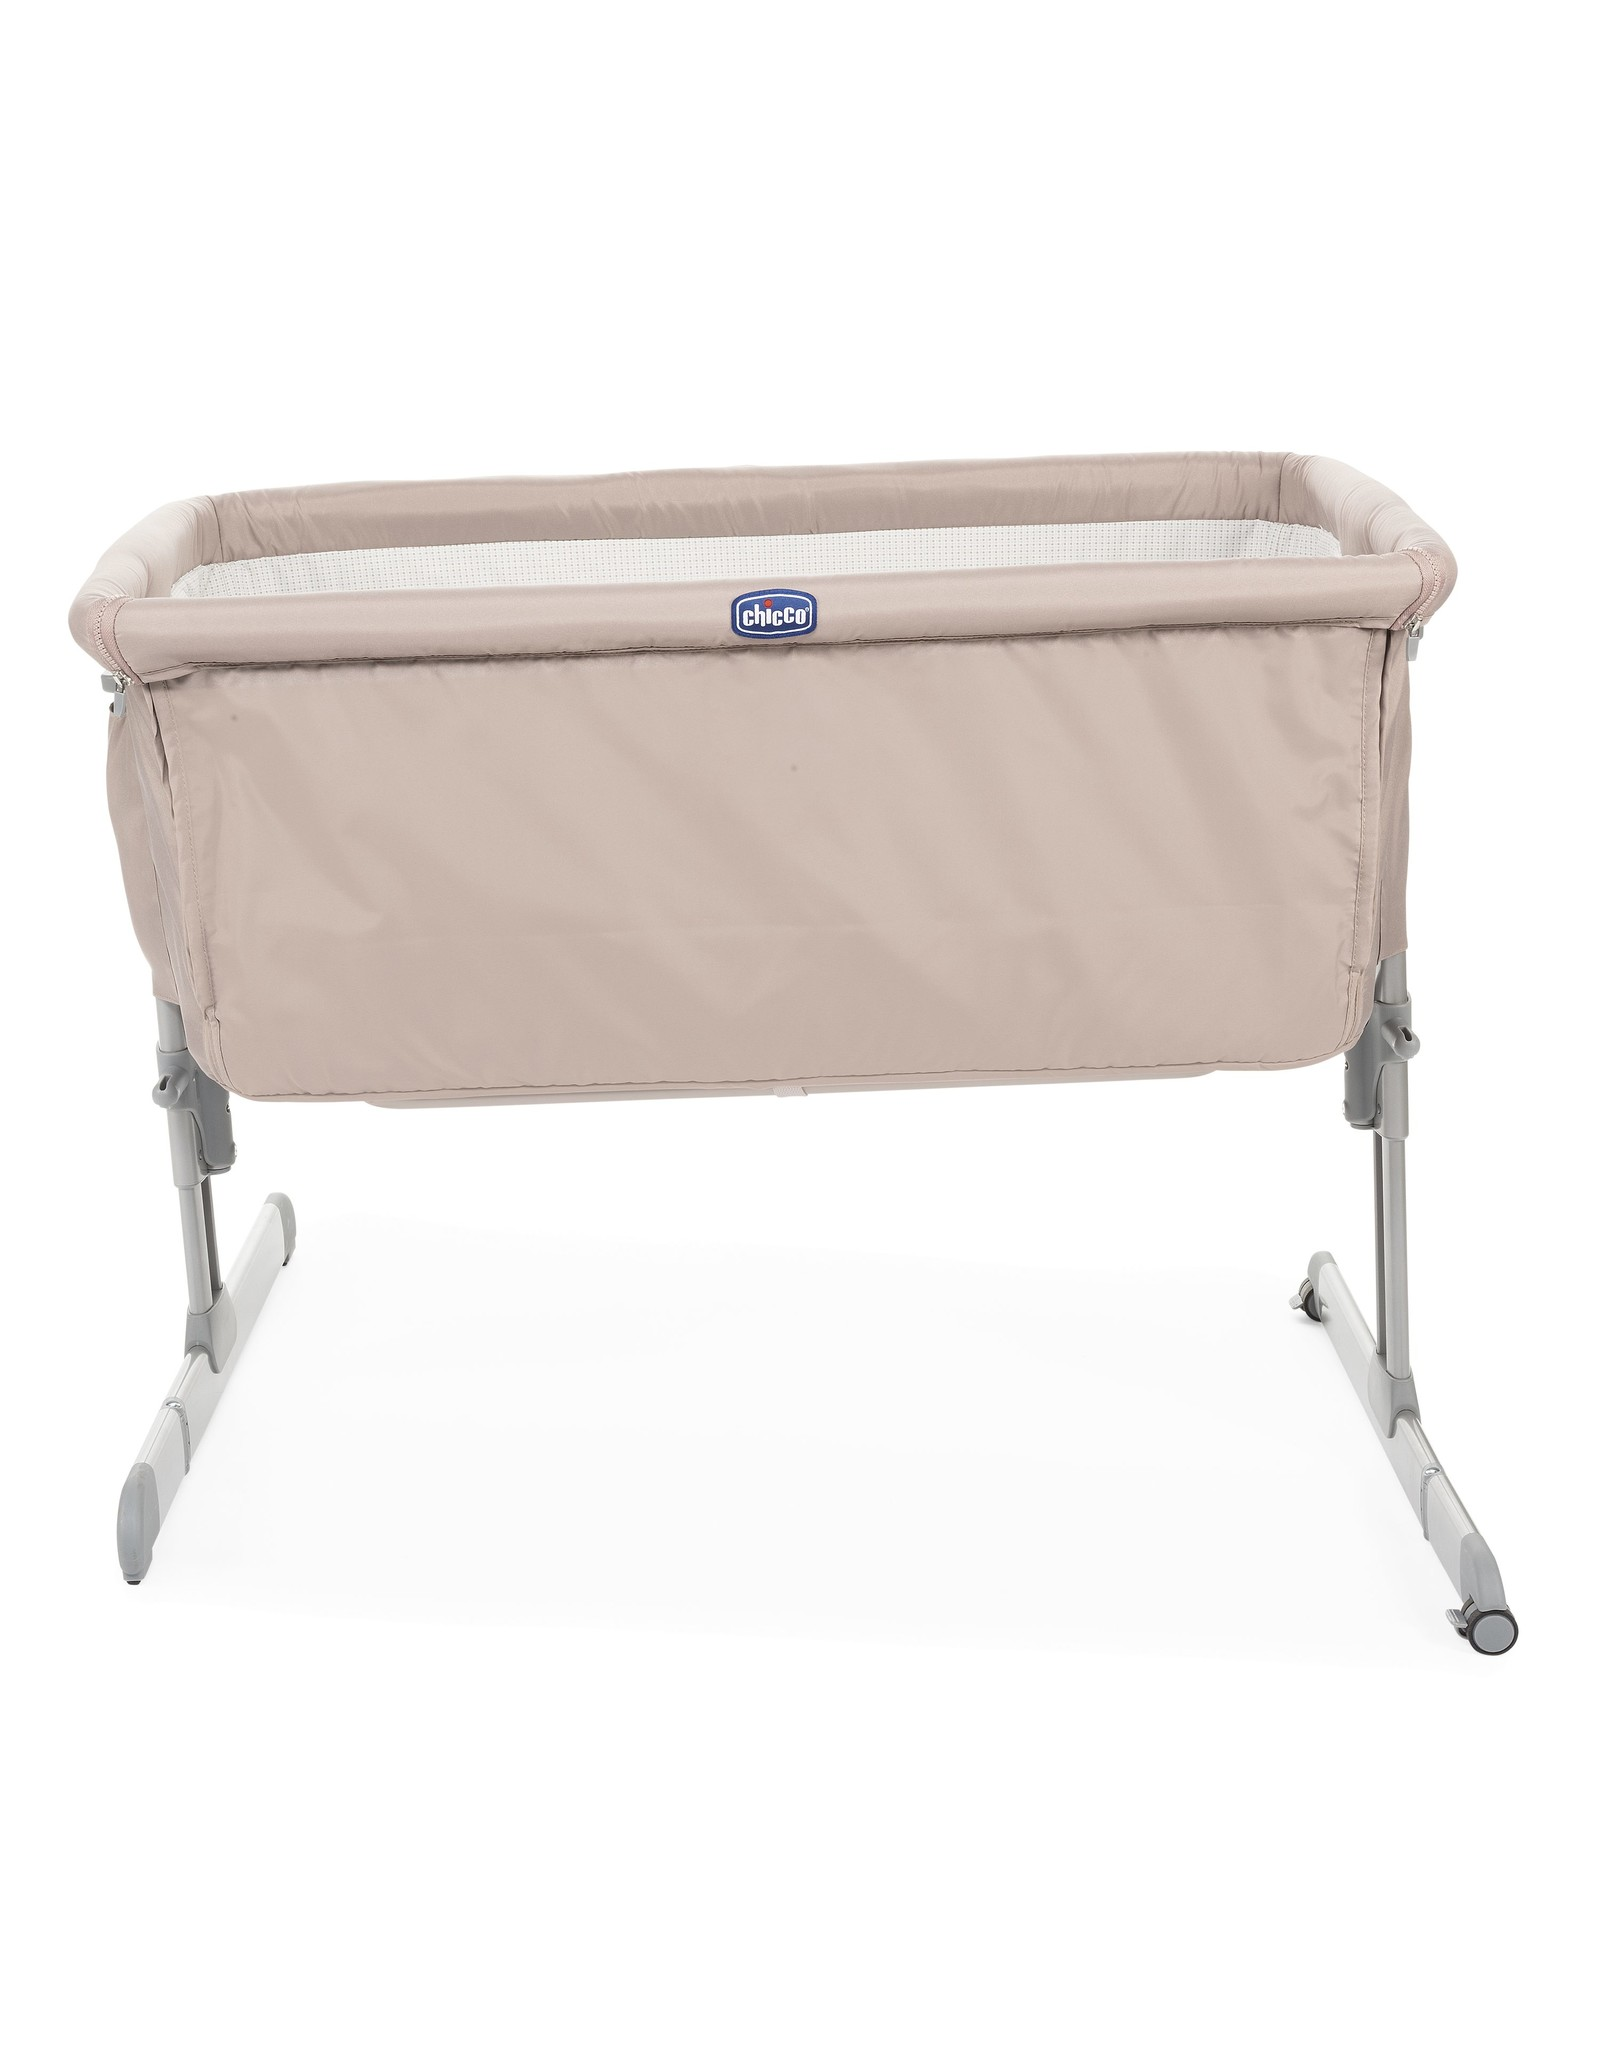 Chicco Chicco - Next2Me - Sidebed including mattress - Sand